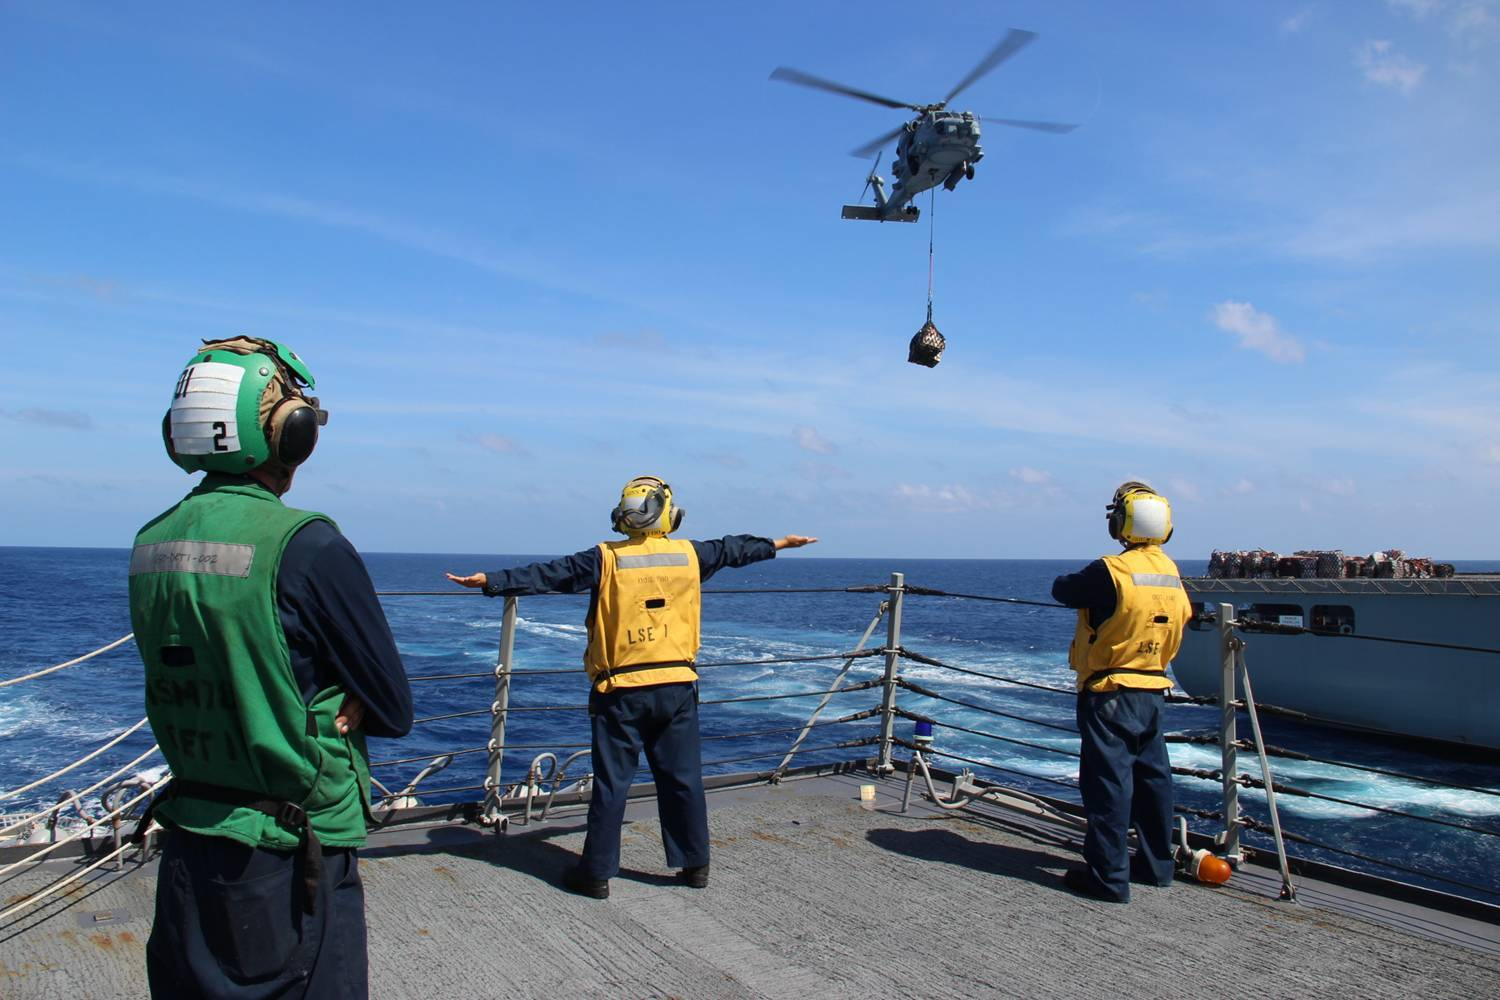 USS Kidd conducts search and rescue operations for missing Malaysian Airlines flight MH370